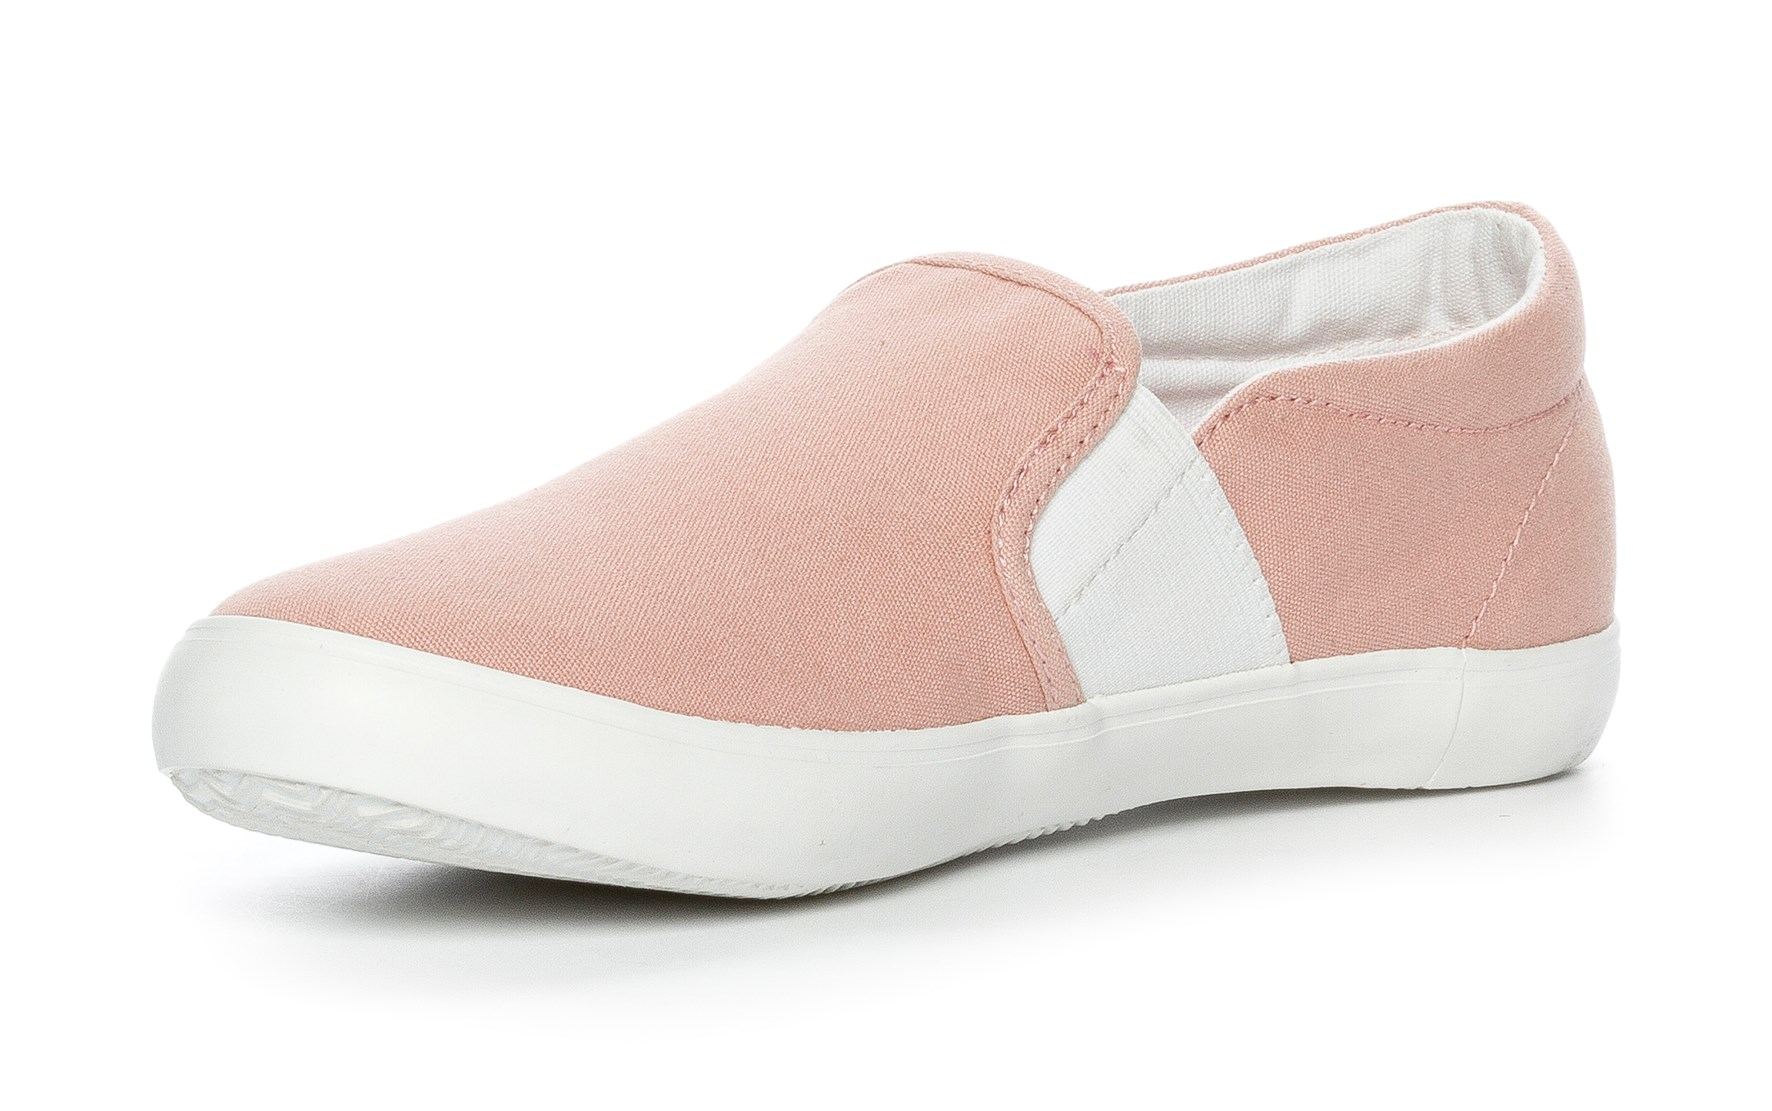 Linear Textilsko - Rosa 304340 feetfirst.se